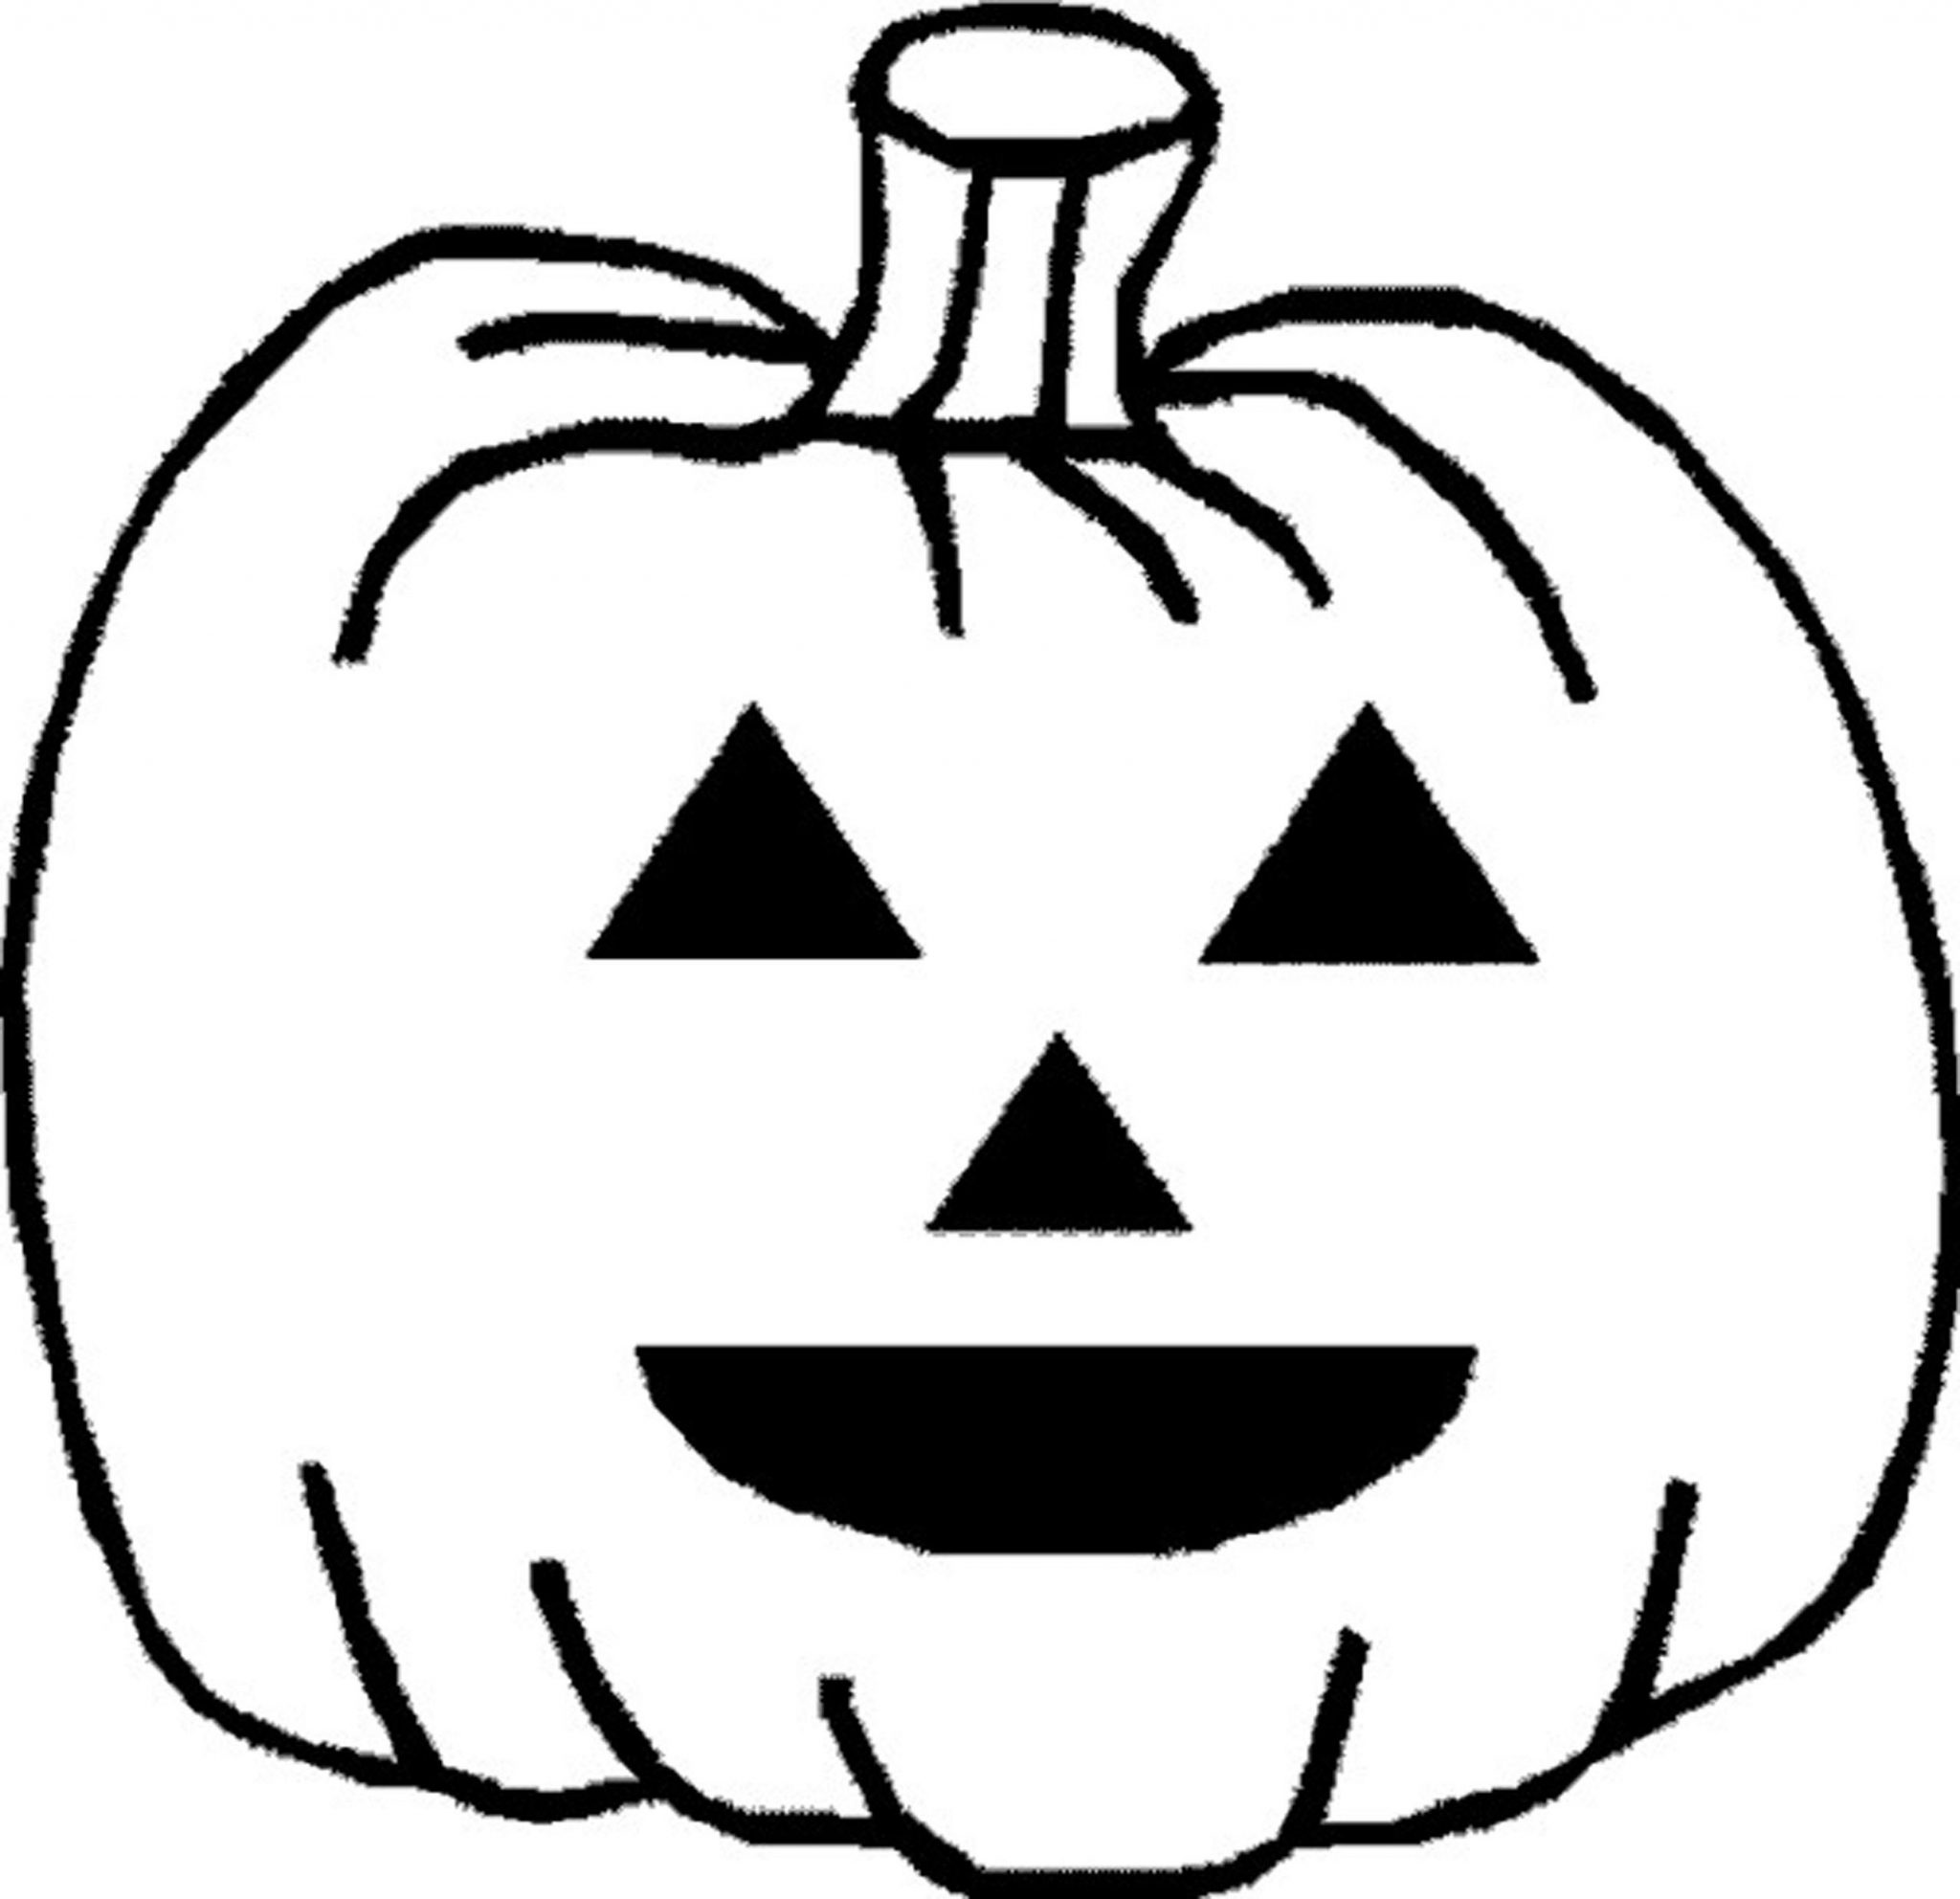 pumpkin colouring free printable pumpkin coloring pages for kids cool2bkids pumpkin colouring